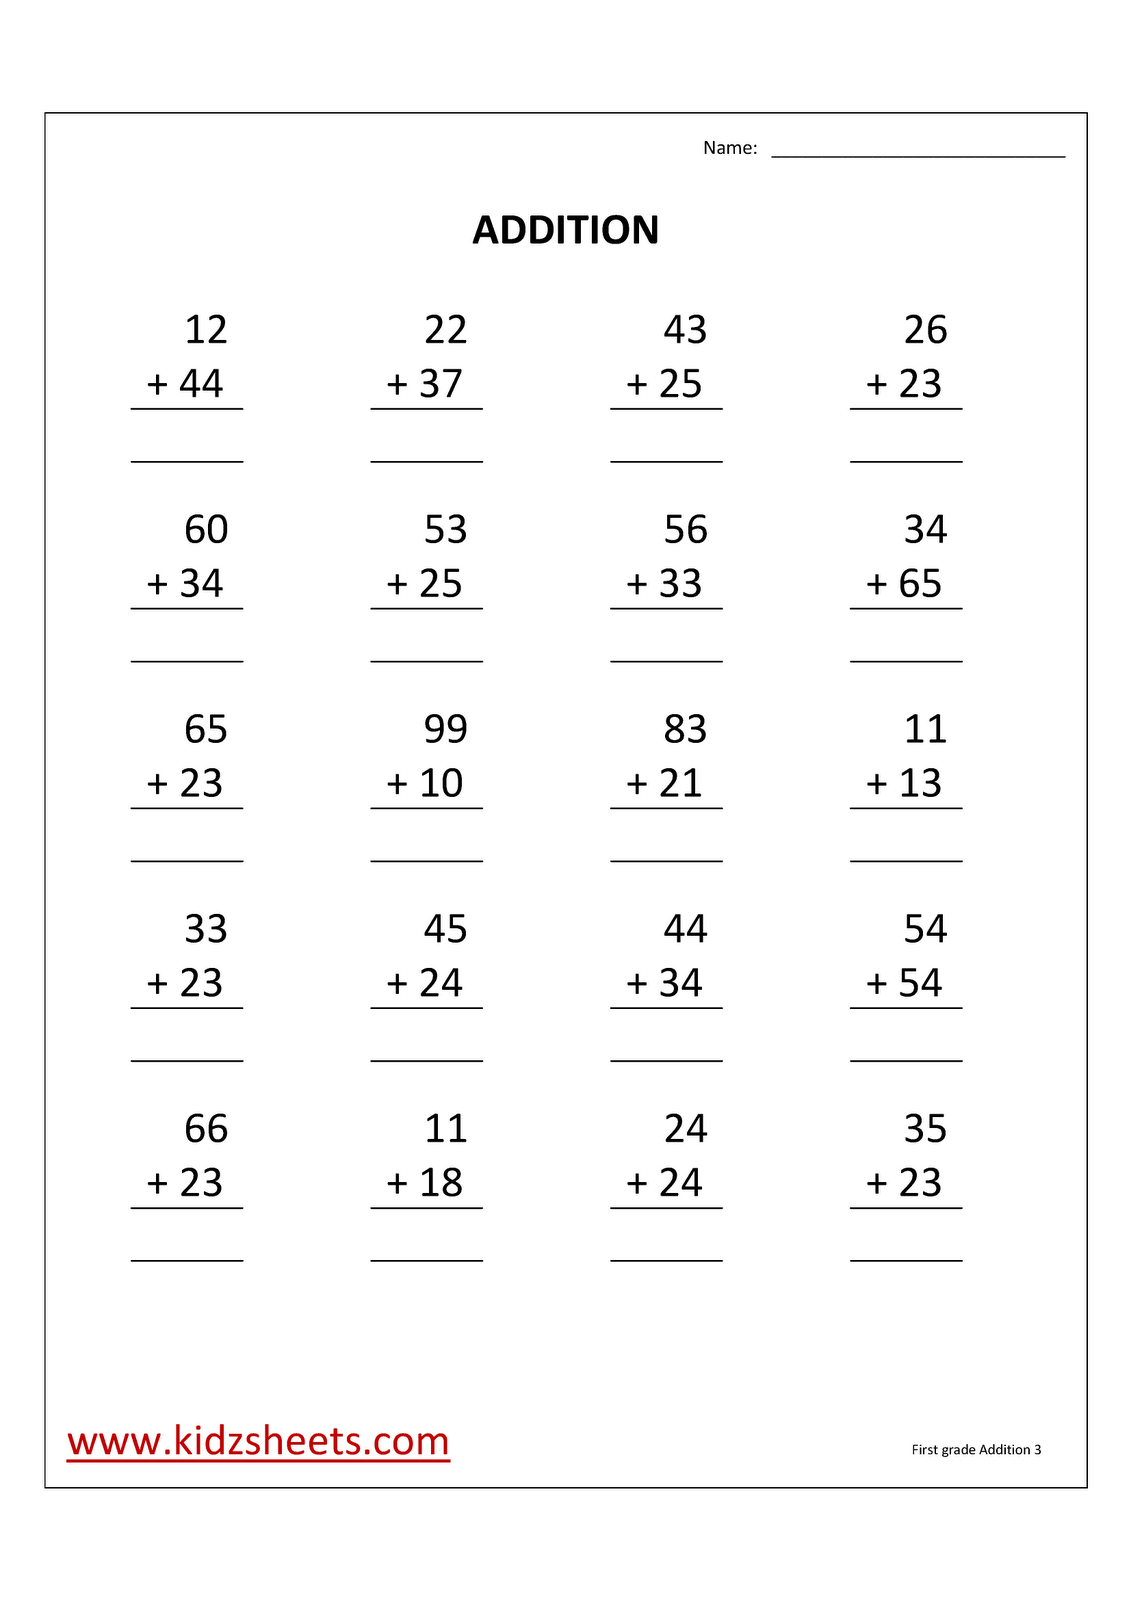 Worksheet Addition Worksheets For Grade 3 addition worksheets year 3 scalien fgaddition3 png 3